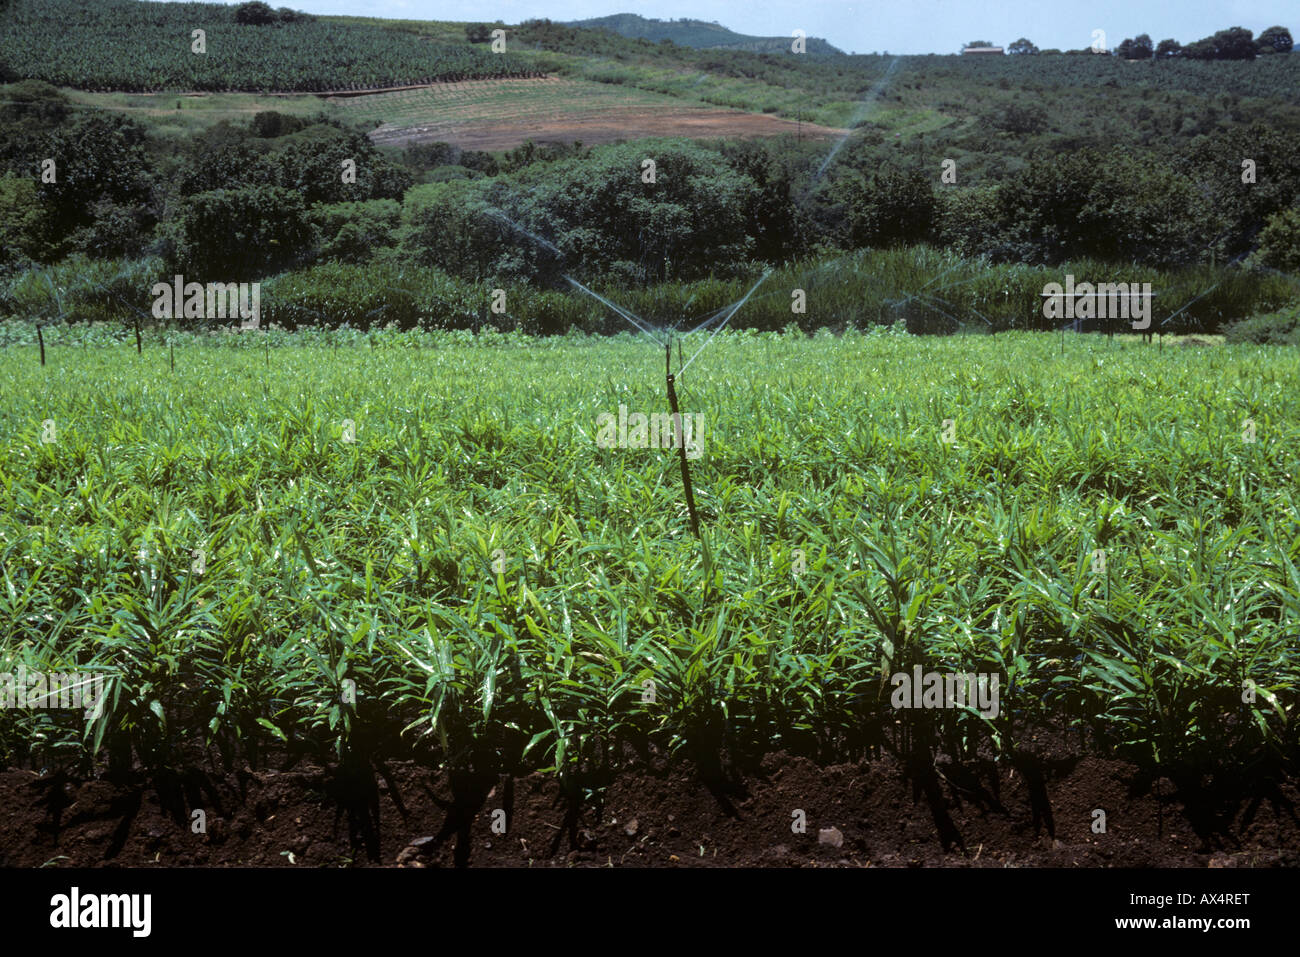 Root ginger crop with irrigation sprinklers near Nelspruit Transvaal South Africa - Stock Image